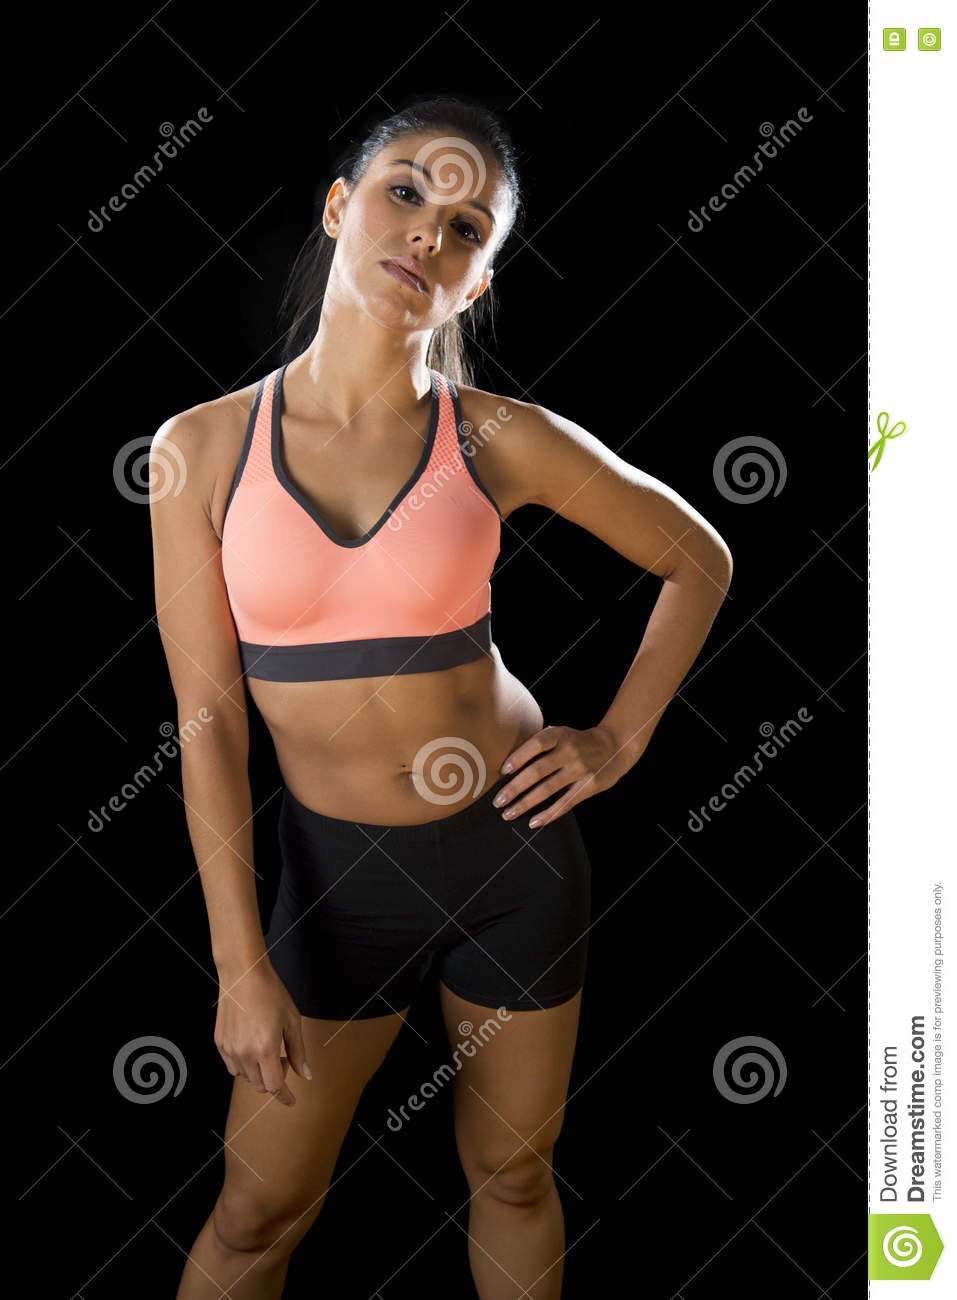 Latin sport woman posing in fierce and badass face expression with fit slim body